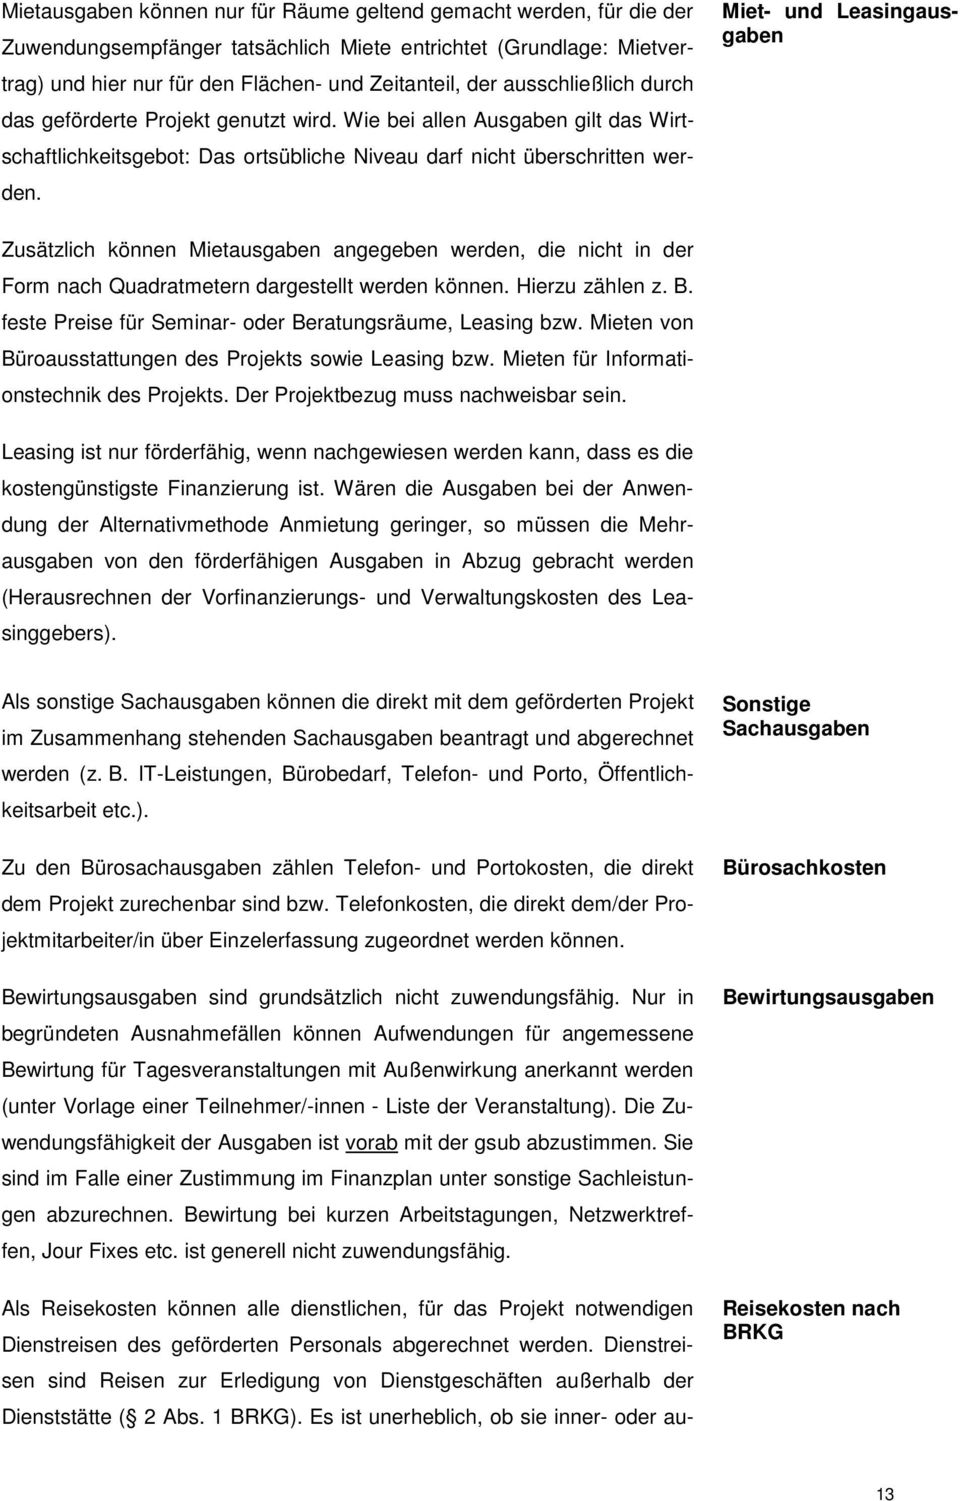 Fantastisch Leasing Vorlage Mieten Bilder - Entry Level Resume ...